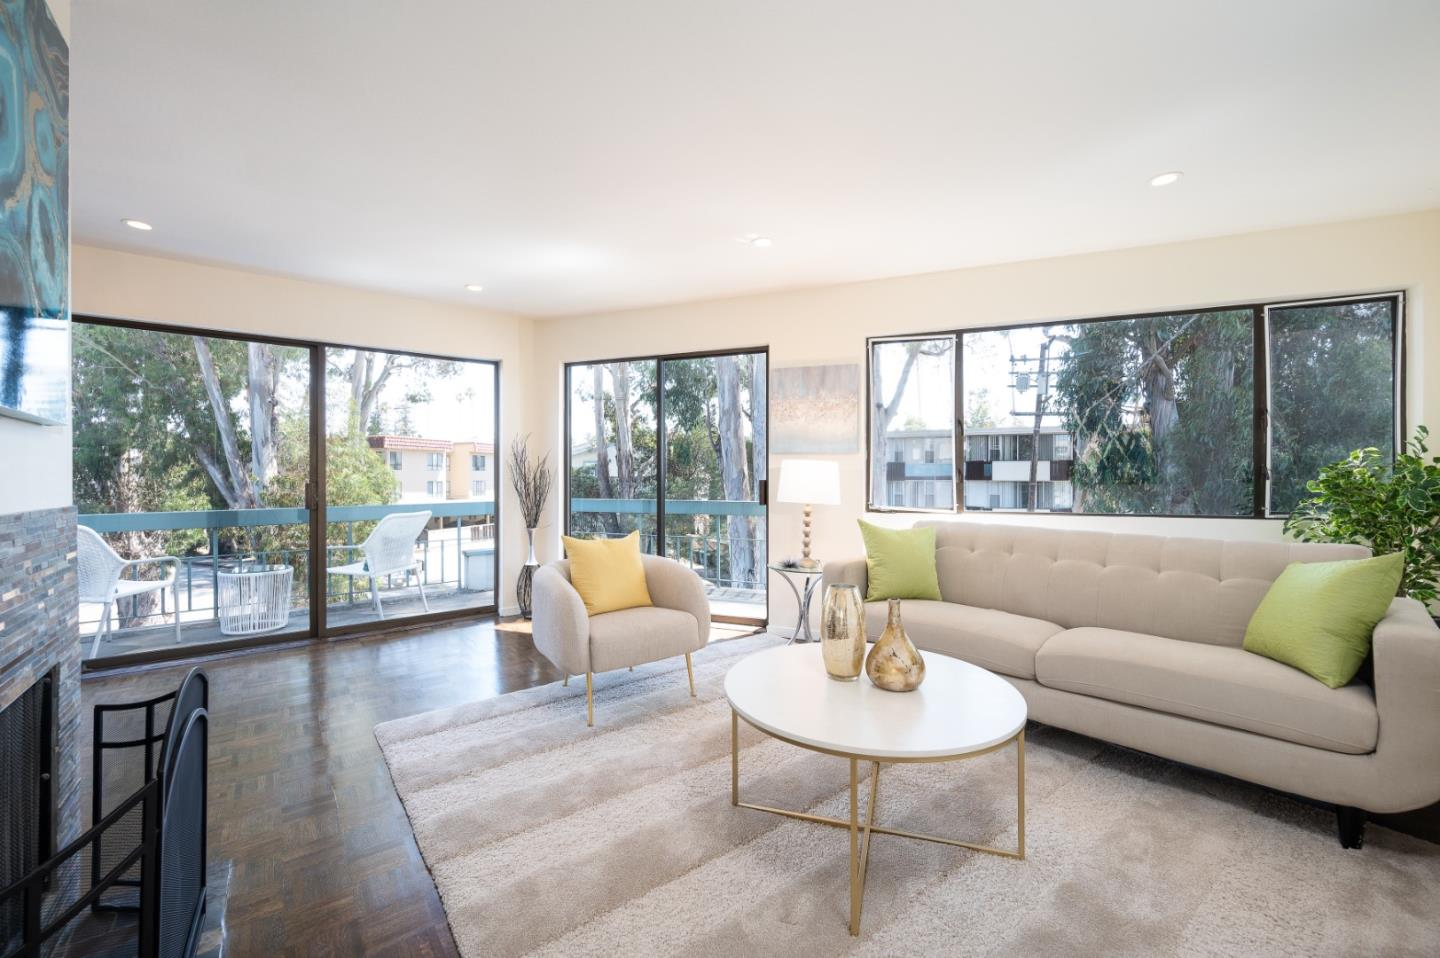 Top floor corner unit in the heart of Burlingame - one of the most sought-after locations in the Bay Area! This 2 bedroom, 1 bathroom retreat elevates modern living to new heights. Nestled in a low-density 8-unit building, the bright and airy home promotes comfort and serenity around every luminous corner. The home boasts newly refinished hardwood floors in the living area, new paint, a gas fireplace in the living room, a wraparound balcony, and an updated kitchen with stainless steel appliances. The dreamy bedrooms are built for those who enjoy space and privacy.  Comes with 1 carport parking space and an extra storage room. Low HOA due covers water, garbage, exterior maintenance, insurance, and professional management. New roof by HOA. Just a few blocks from the vibrant Downtown with world-class stores, trendy shops, popular eateries, and activities. Located in the top-rated school district and within unparalleled proximity to Parks, CalTrain, BART Station, Highway 101, so much more.